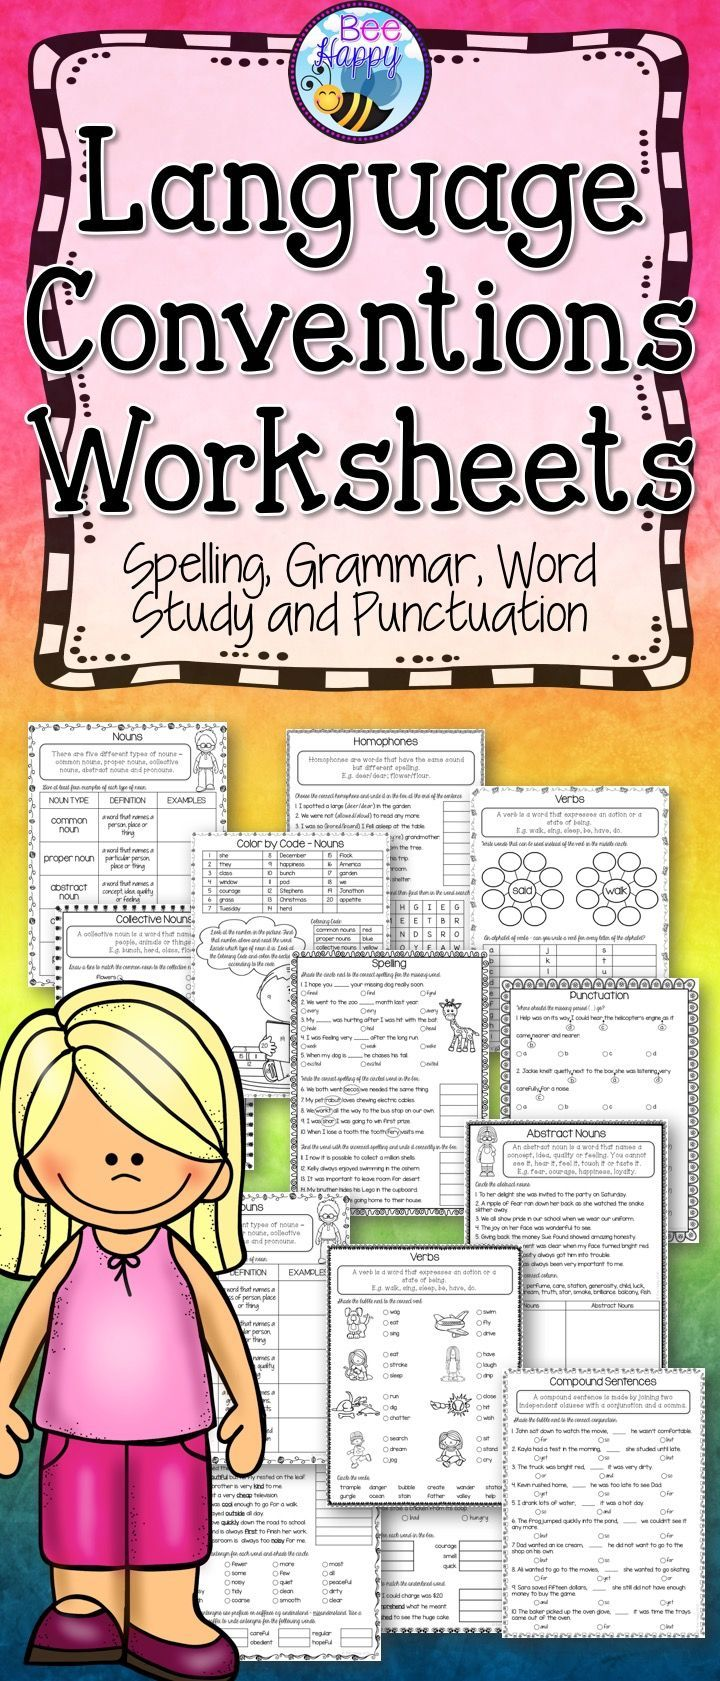 Language Conventions Worksheets Test Preparation Australian